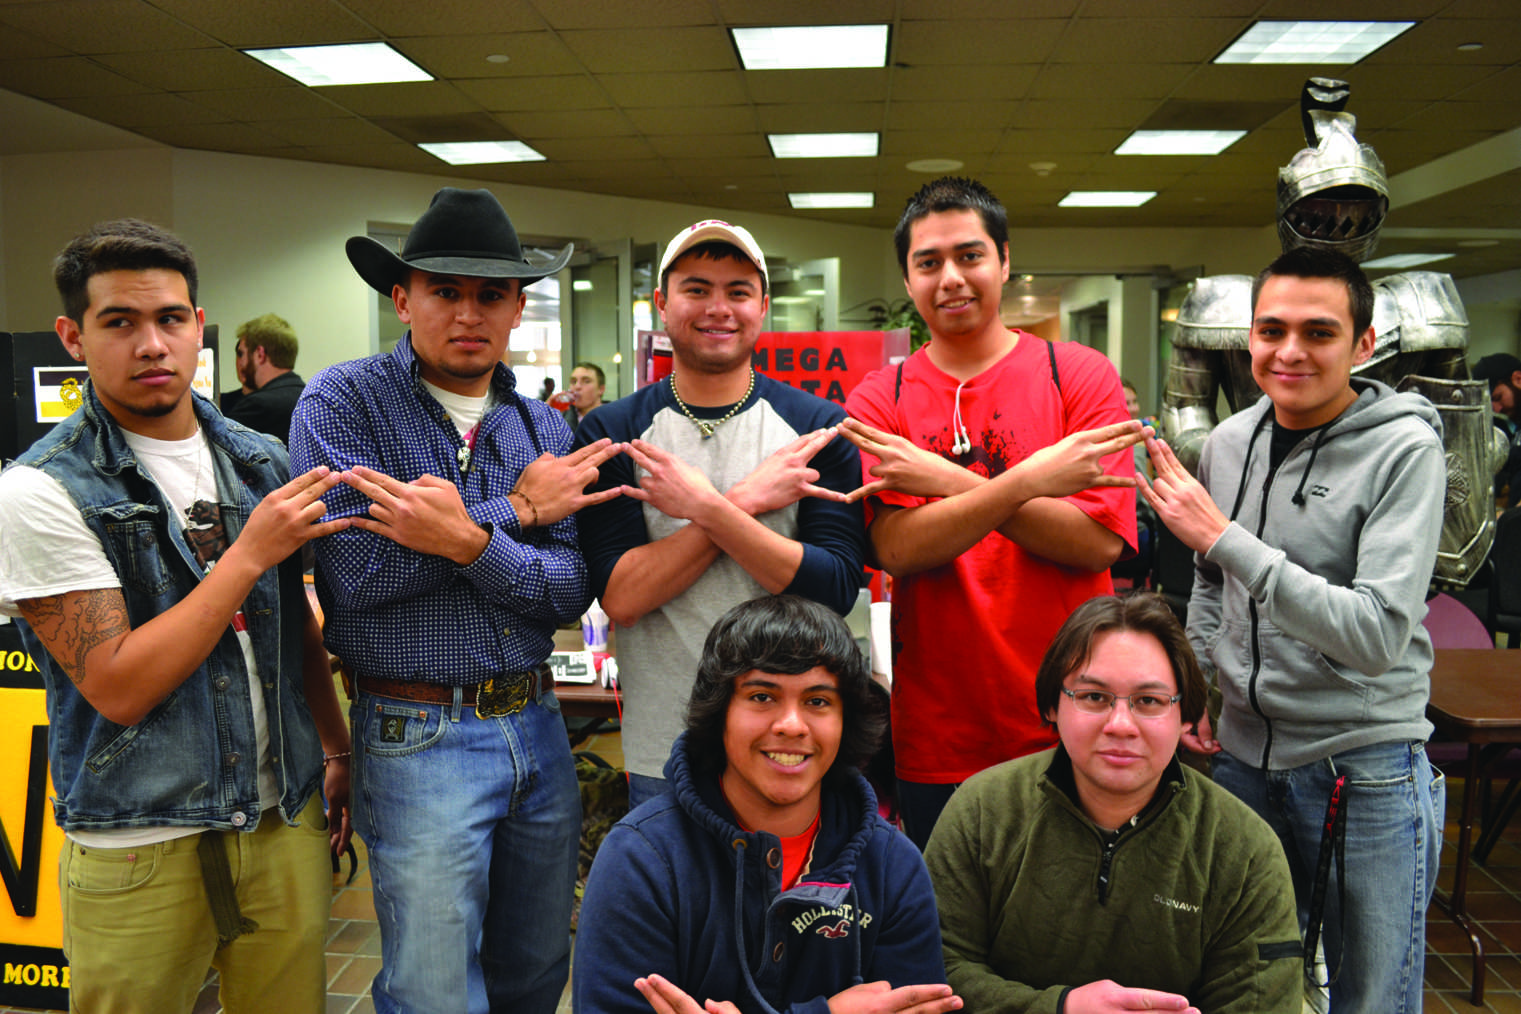 Omega Delta Phi displaying their letters in the JBK during rush week. Photo by Alex Montoya.